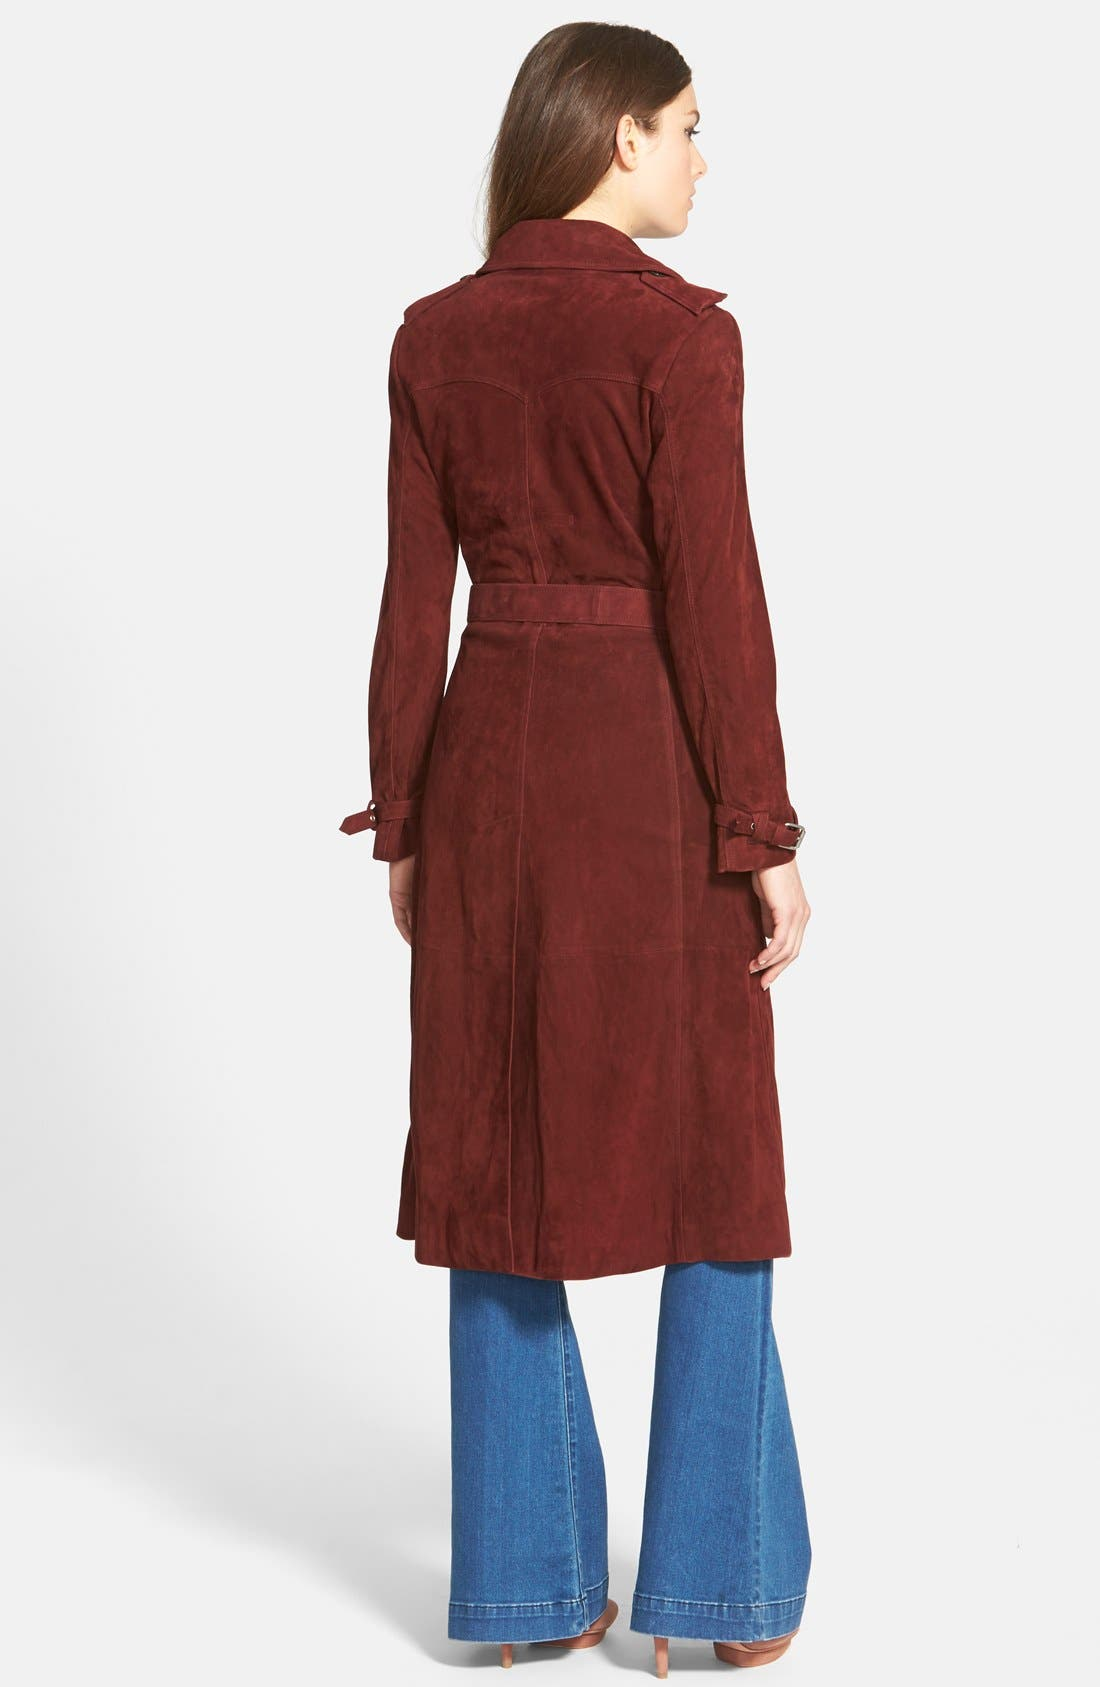 RebeccaMinkoff'Amis' SuedeTrench Coat,                             Alternate thumbnail 2, color,                             930